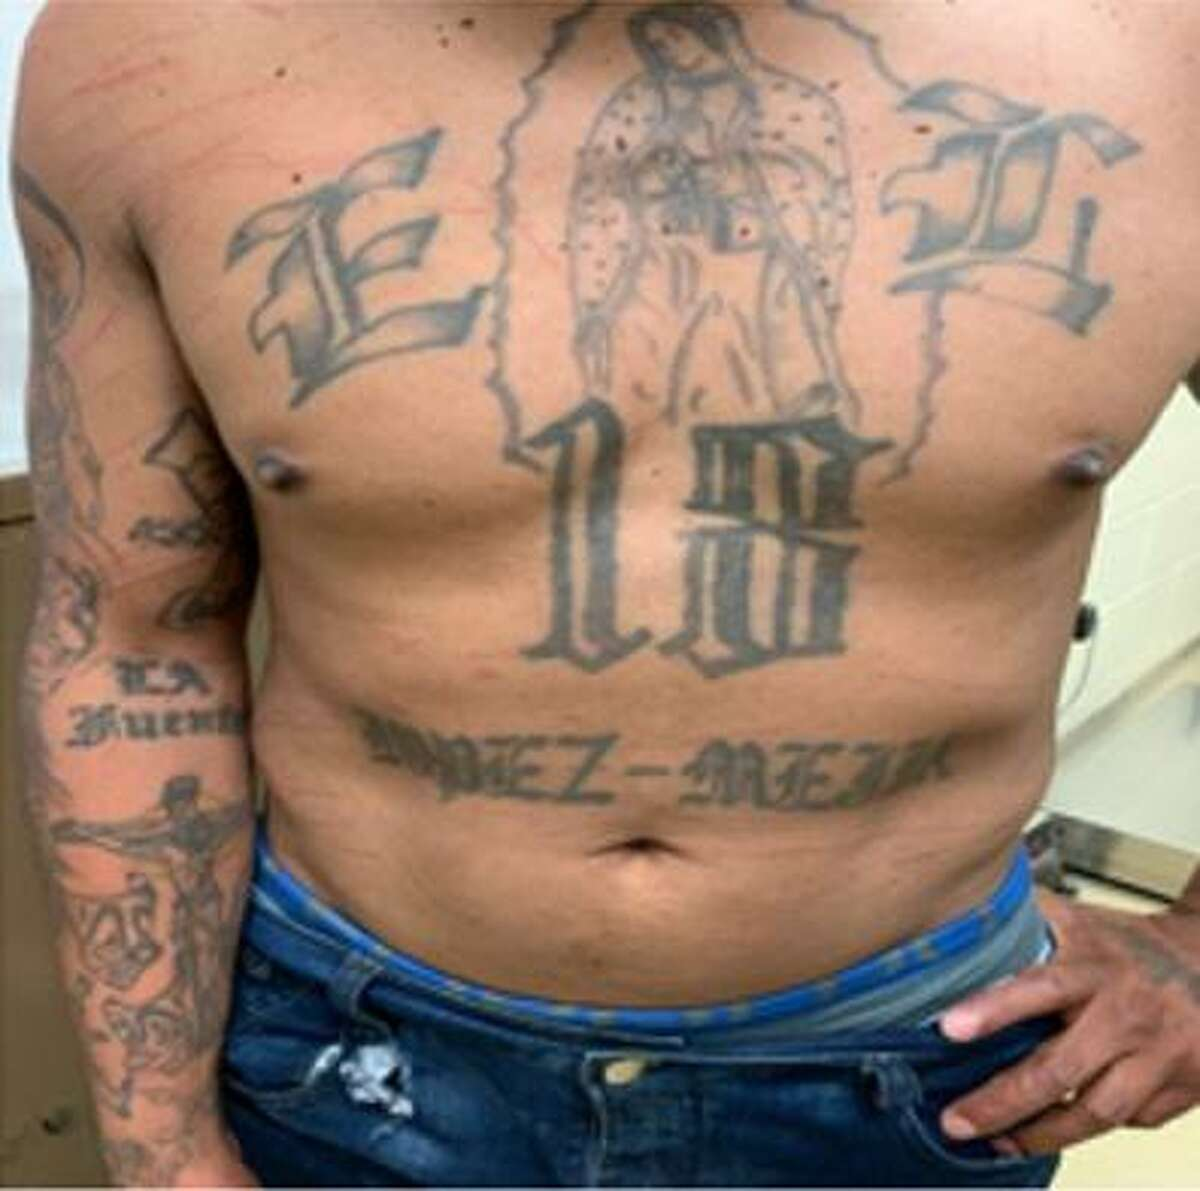 Tattoos related to the 18th Street gang are shown on the torso of a wanted member arrested June 28 by agents from the Hebbronville Border Patrol station.